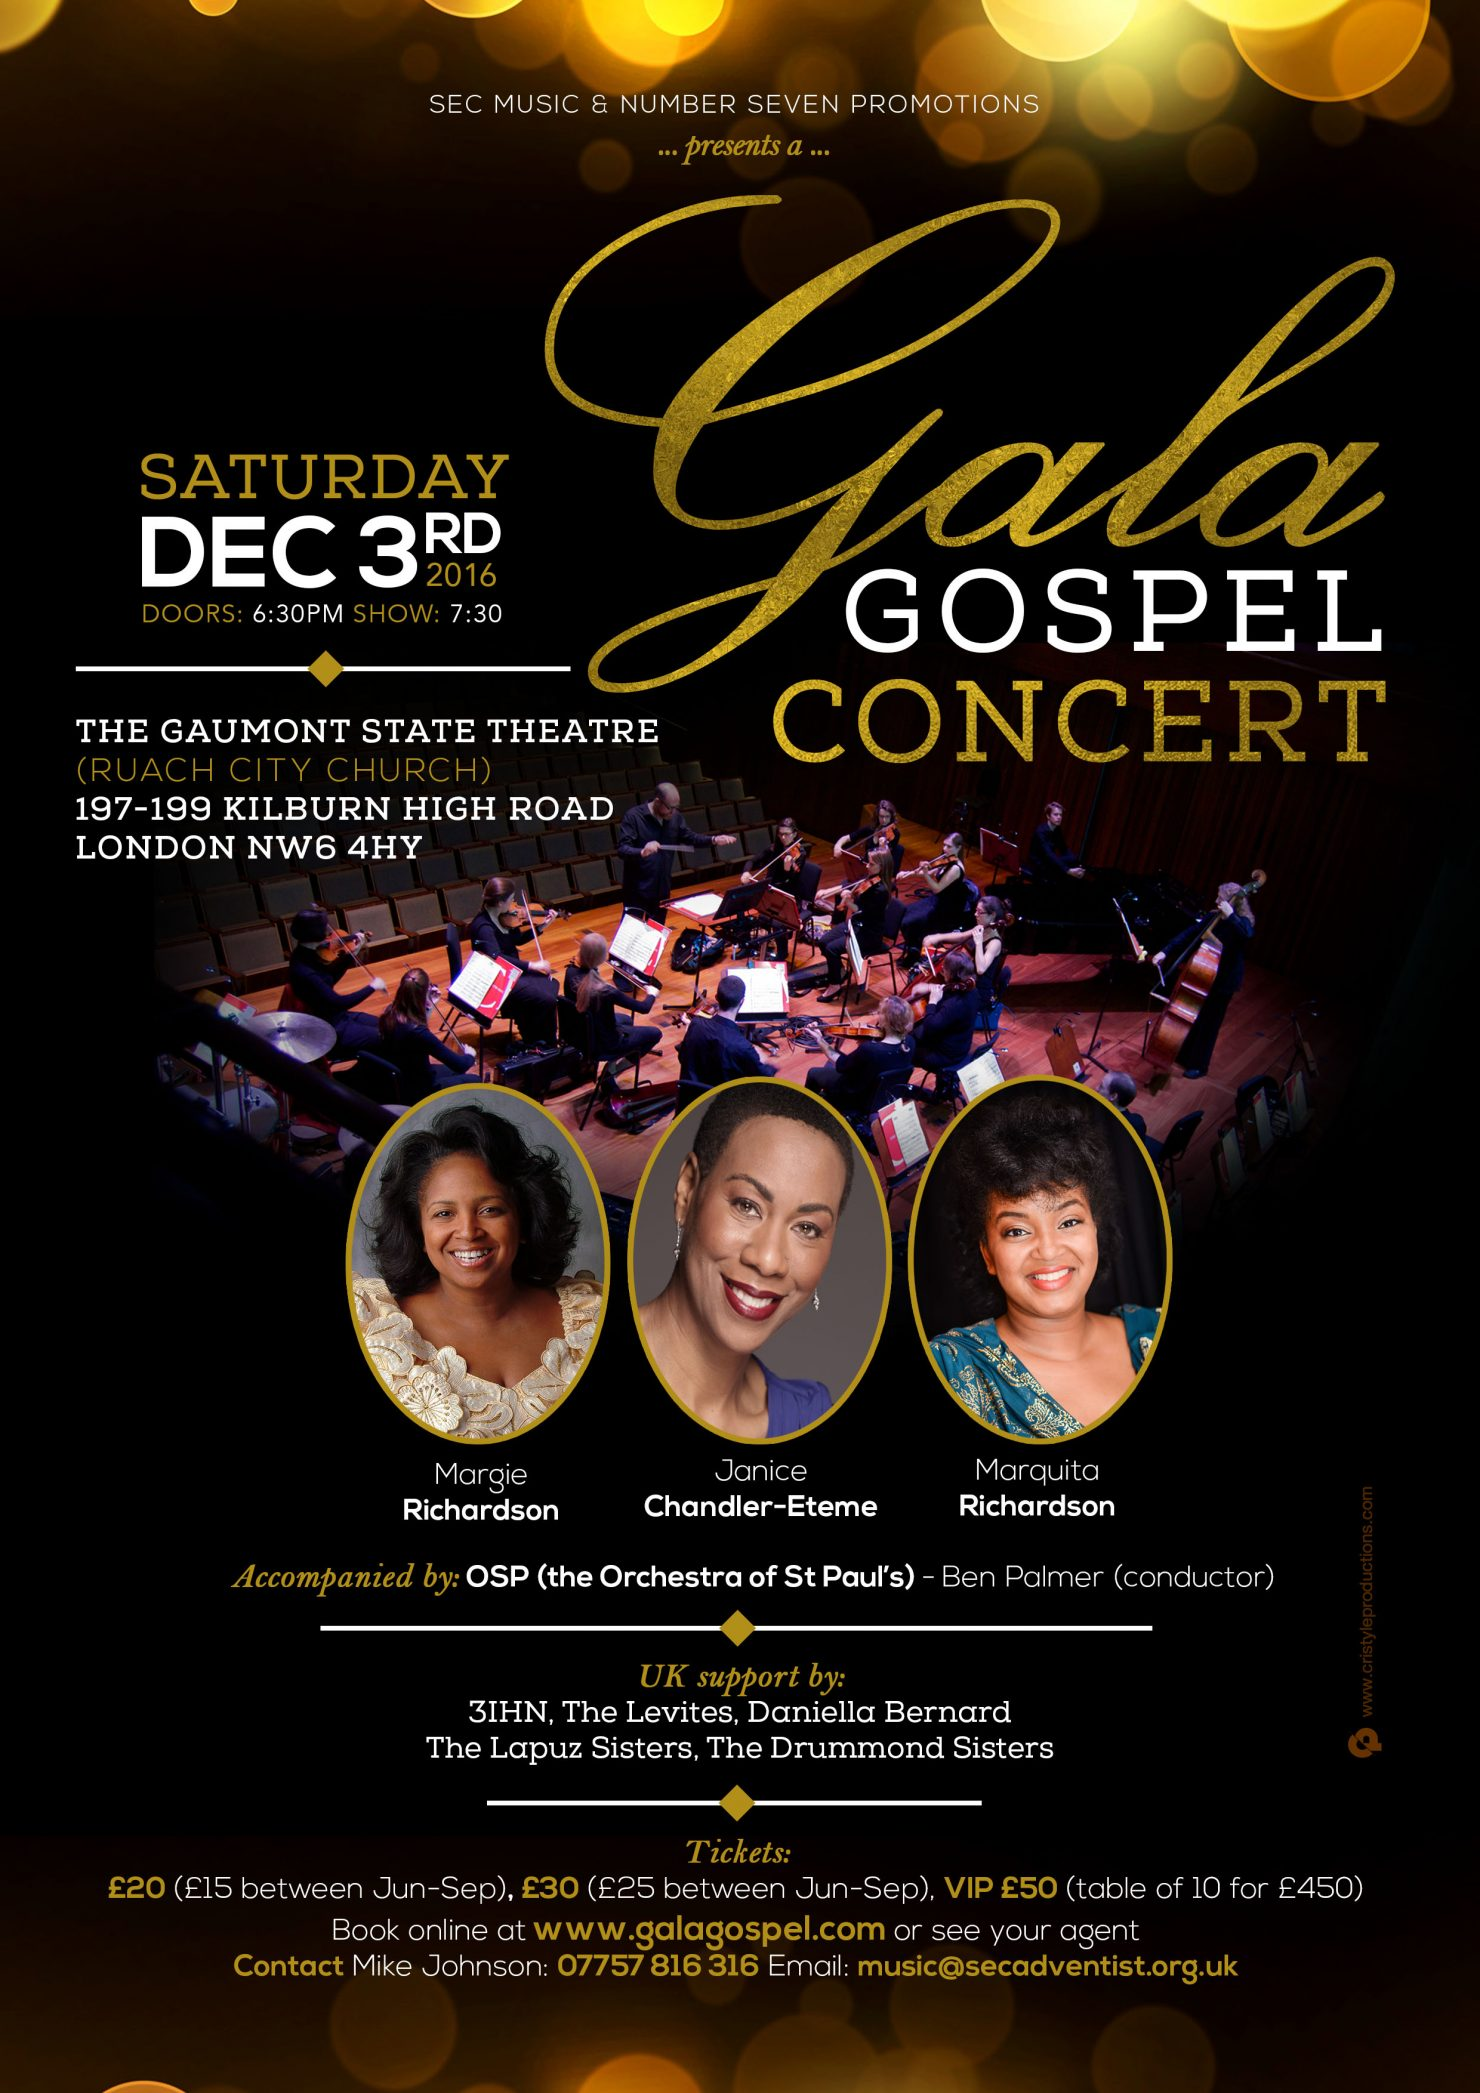 gala gospel concert  u2013 croydon seventh